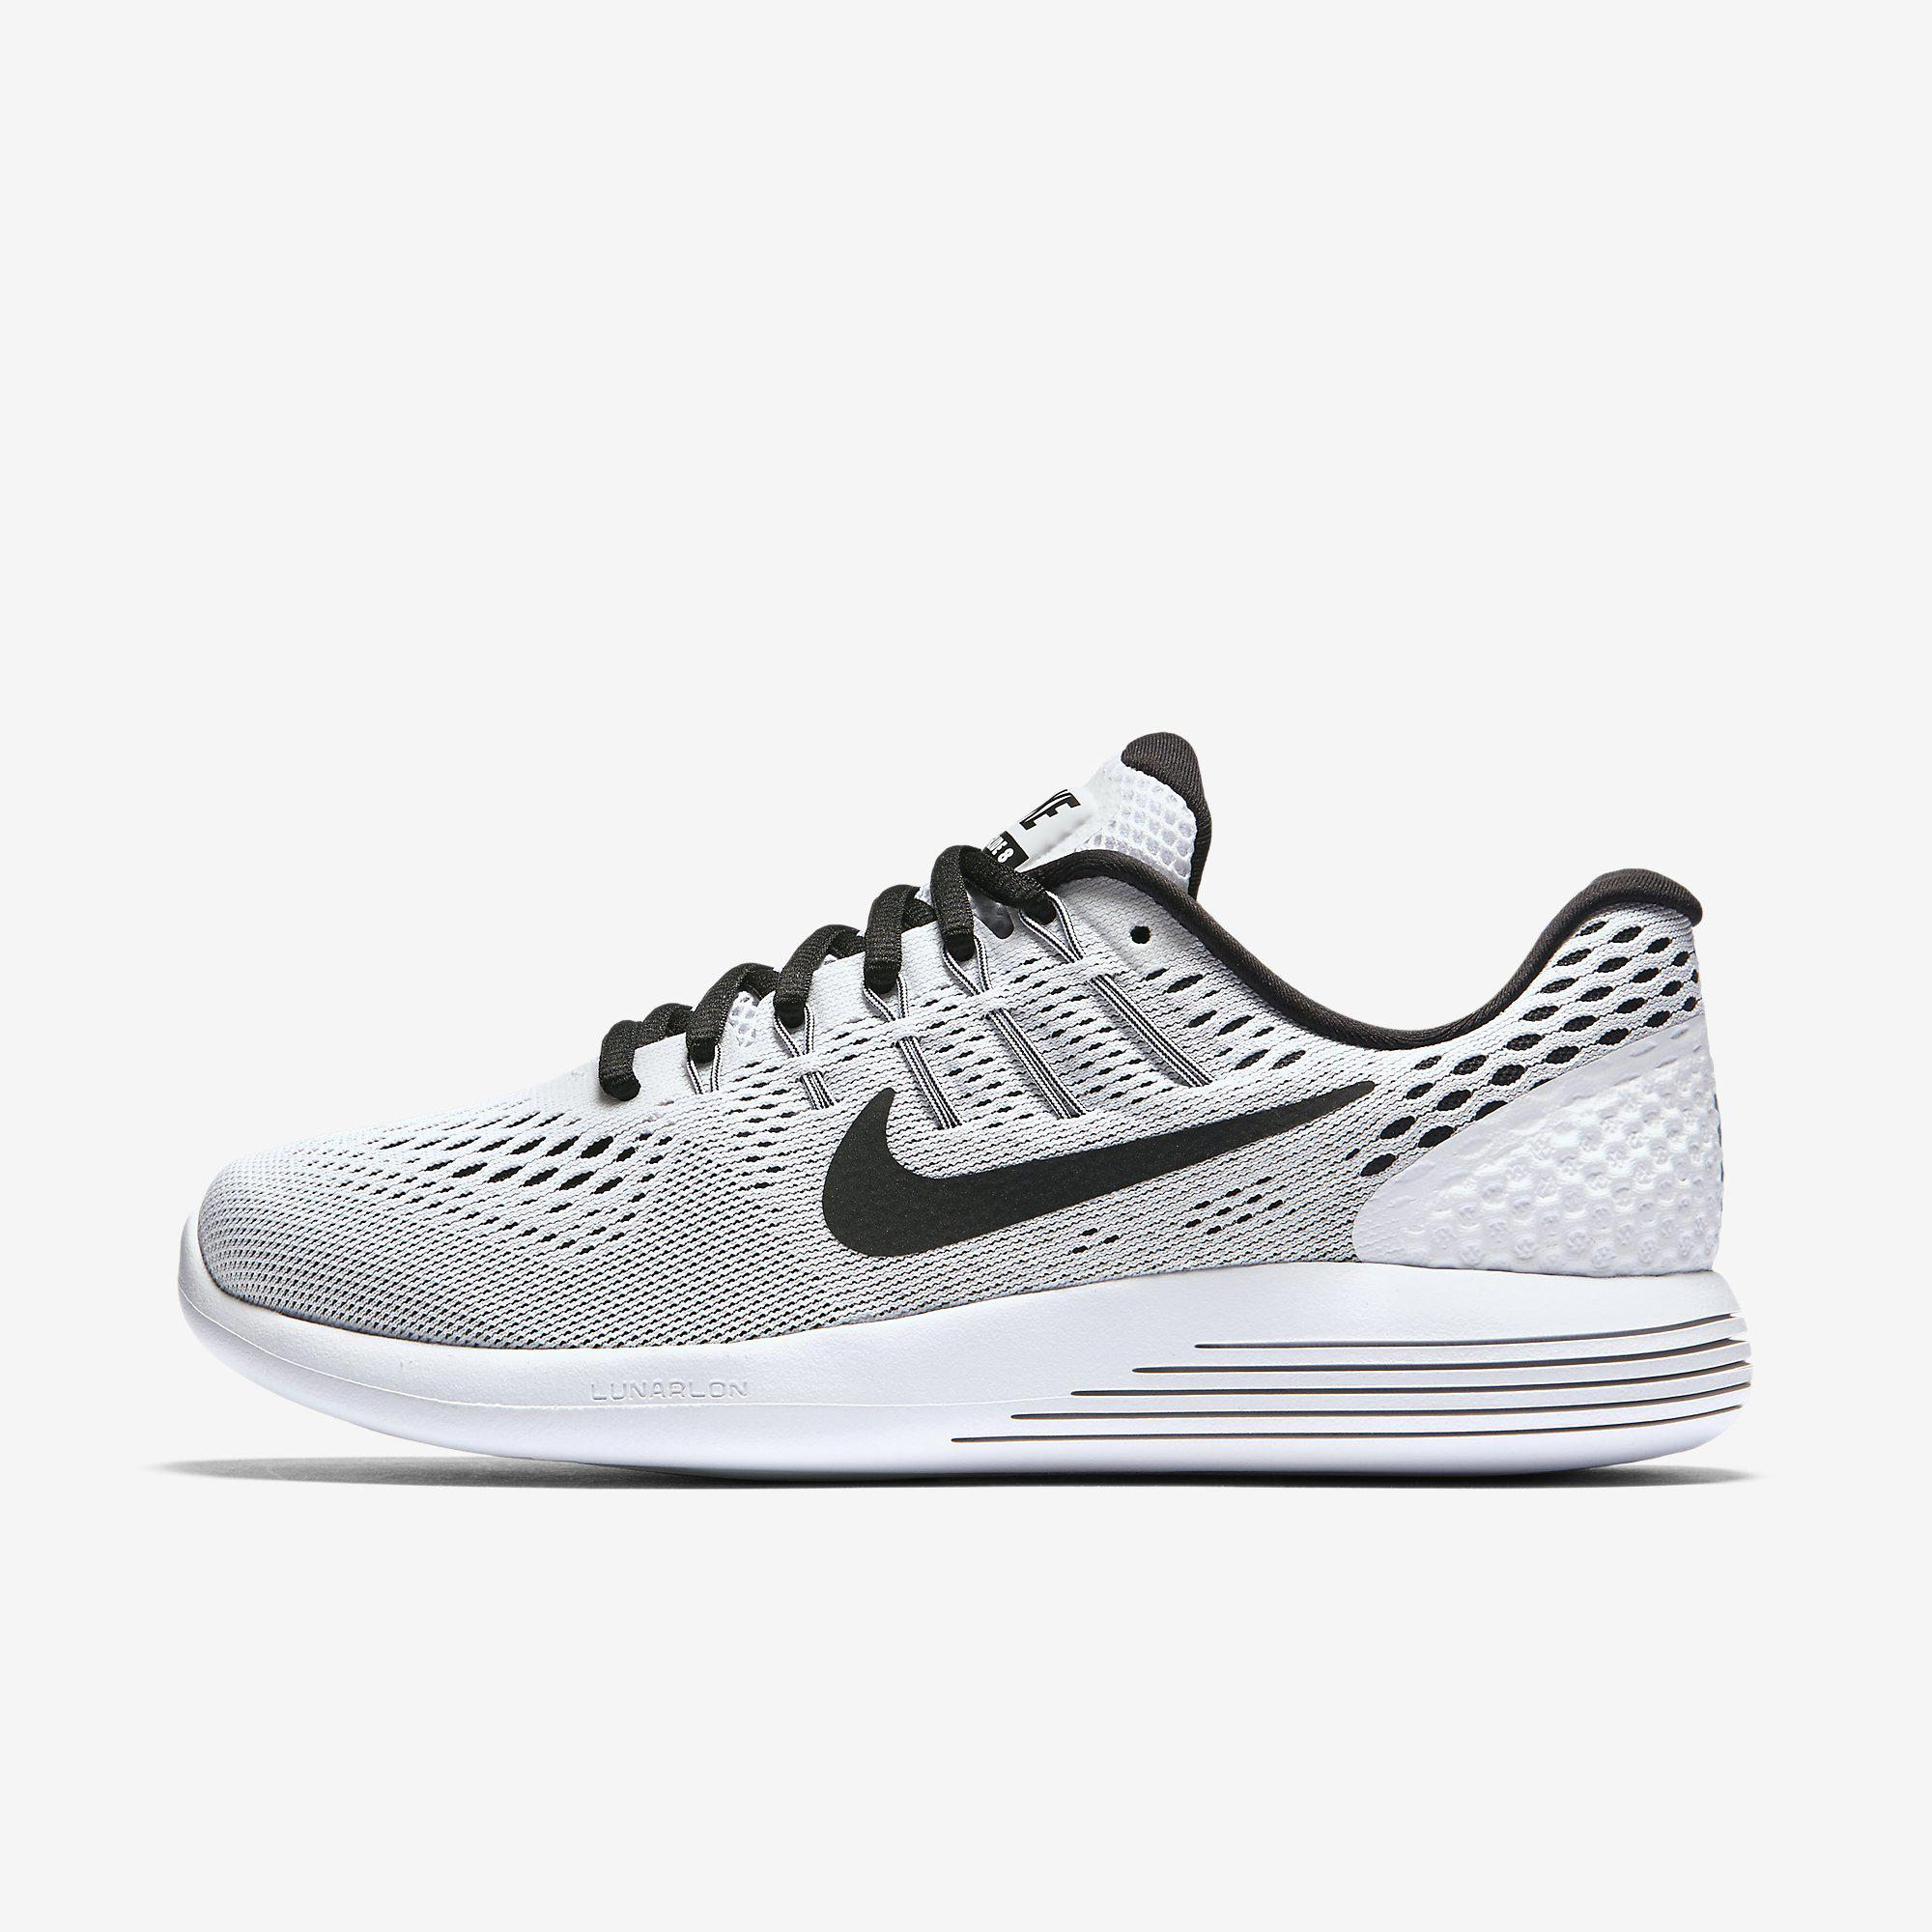 Creative Cheap Womens Running Shoes Nike Free 5.0 2014 Black White Sale